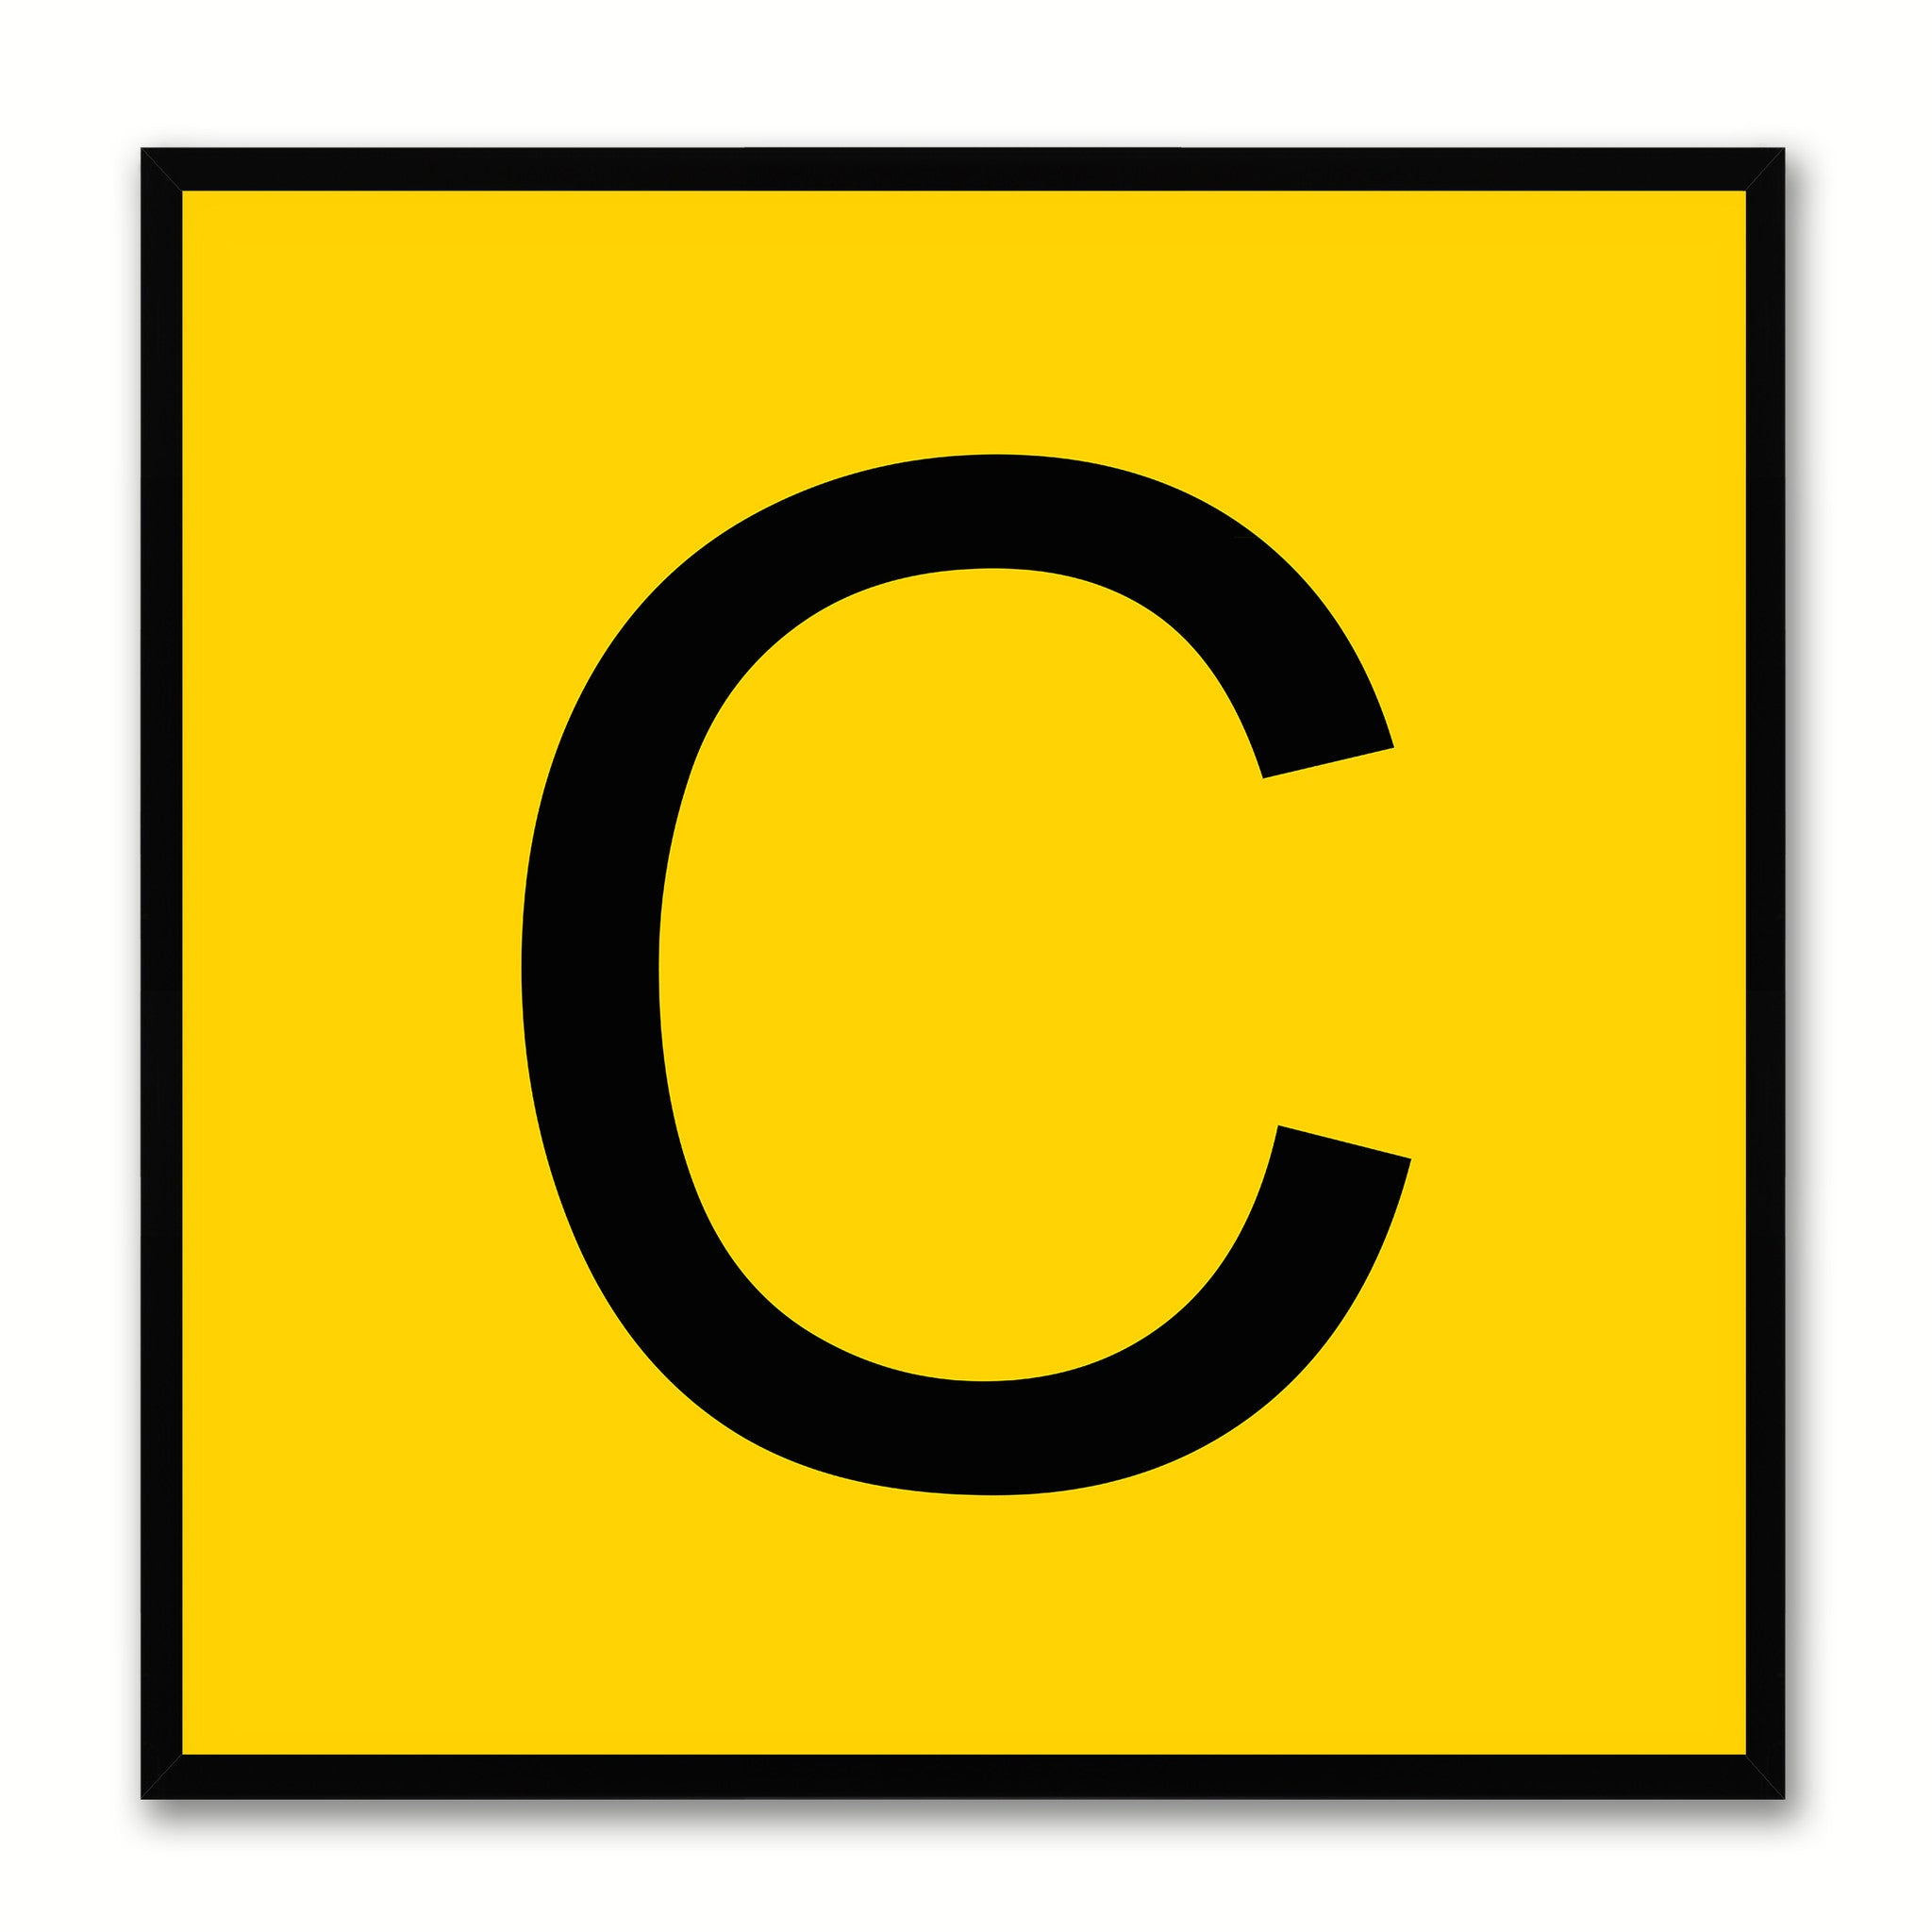 Alphabet C Yellow Canvas Print Black Frame Kids Bedroom Wall Décor Home Art